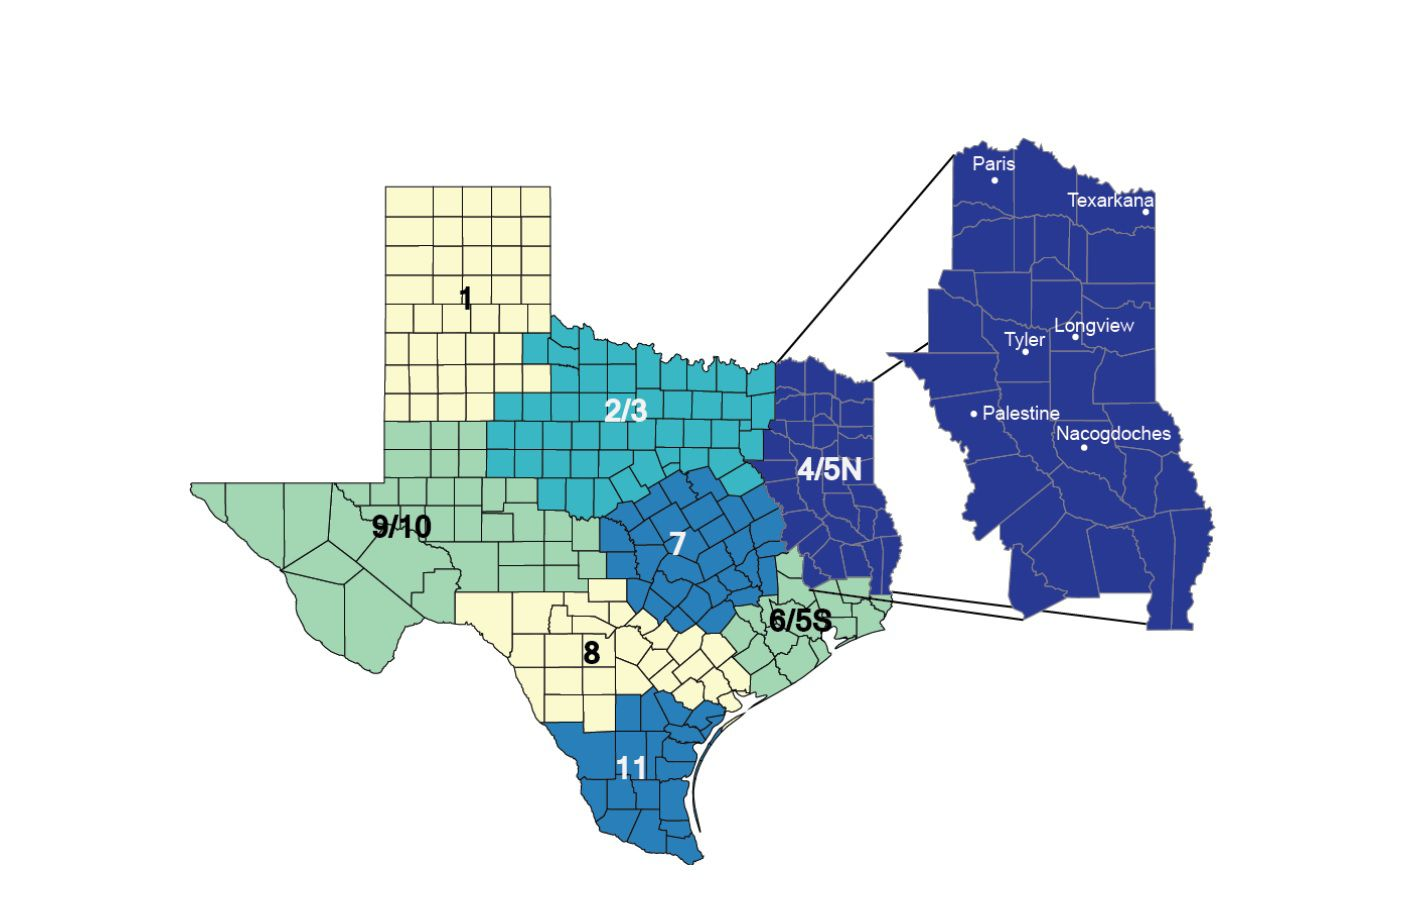 High mortality rates in Northeast Texas not just 'a health